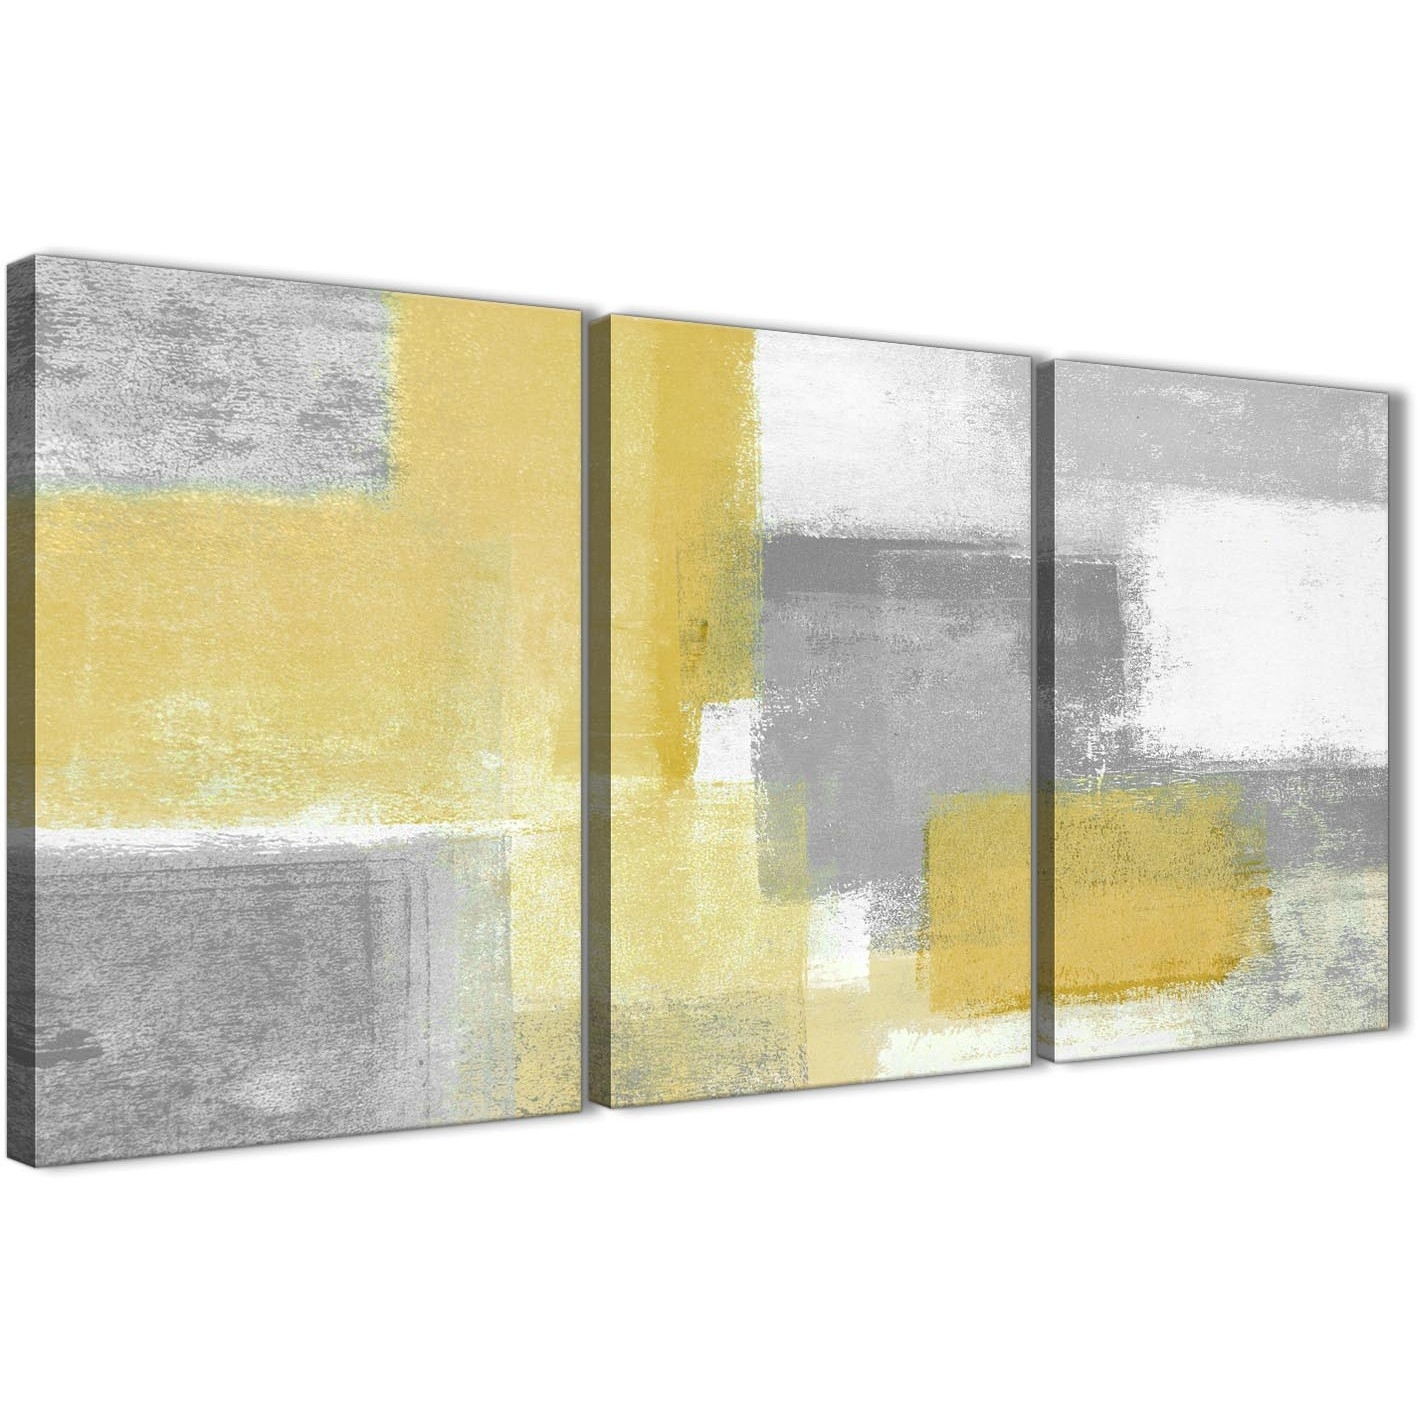 3 Panel Mustard Yellow Grey Kitchen Canvas Wall Art Decor – Abstract With Most Recent Wall Canvas Art (View 4 of 15)